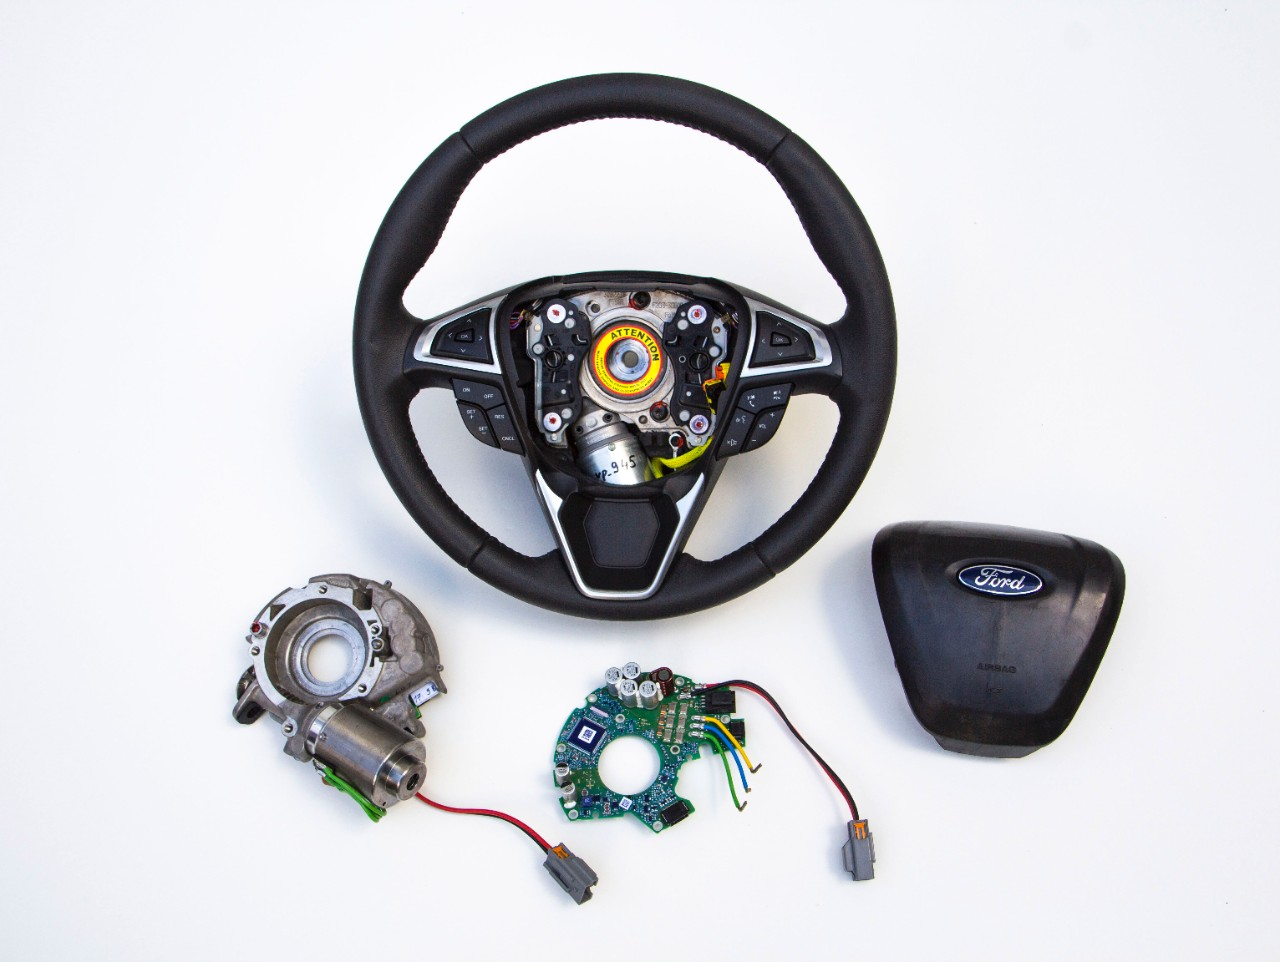 Ford adaptive steering mechanism